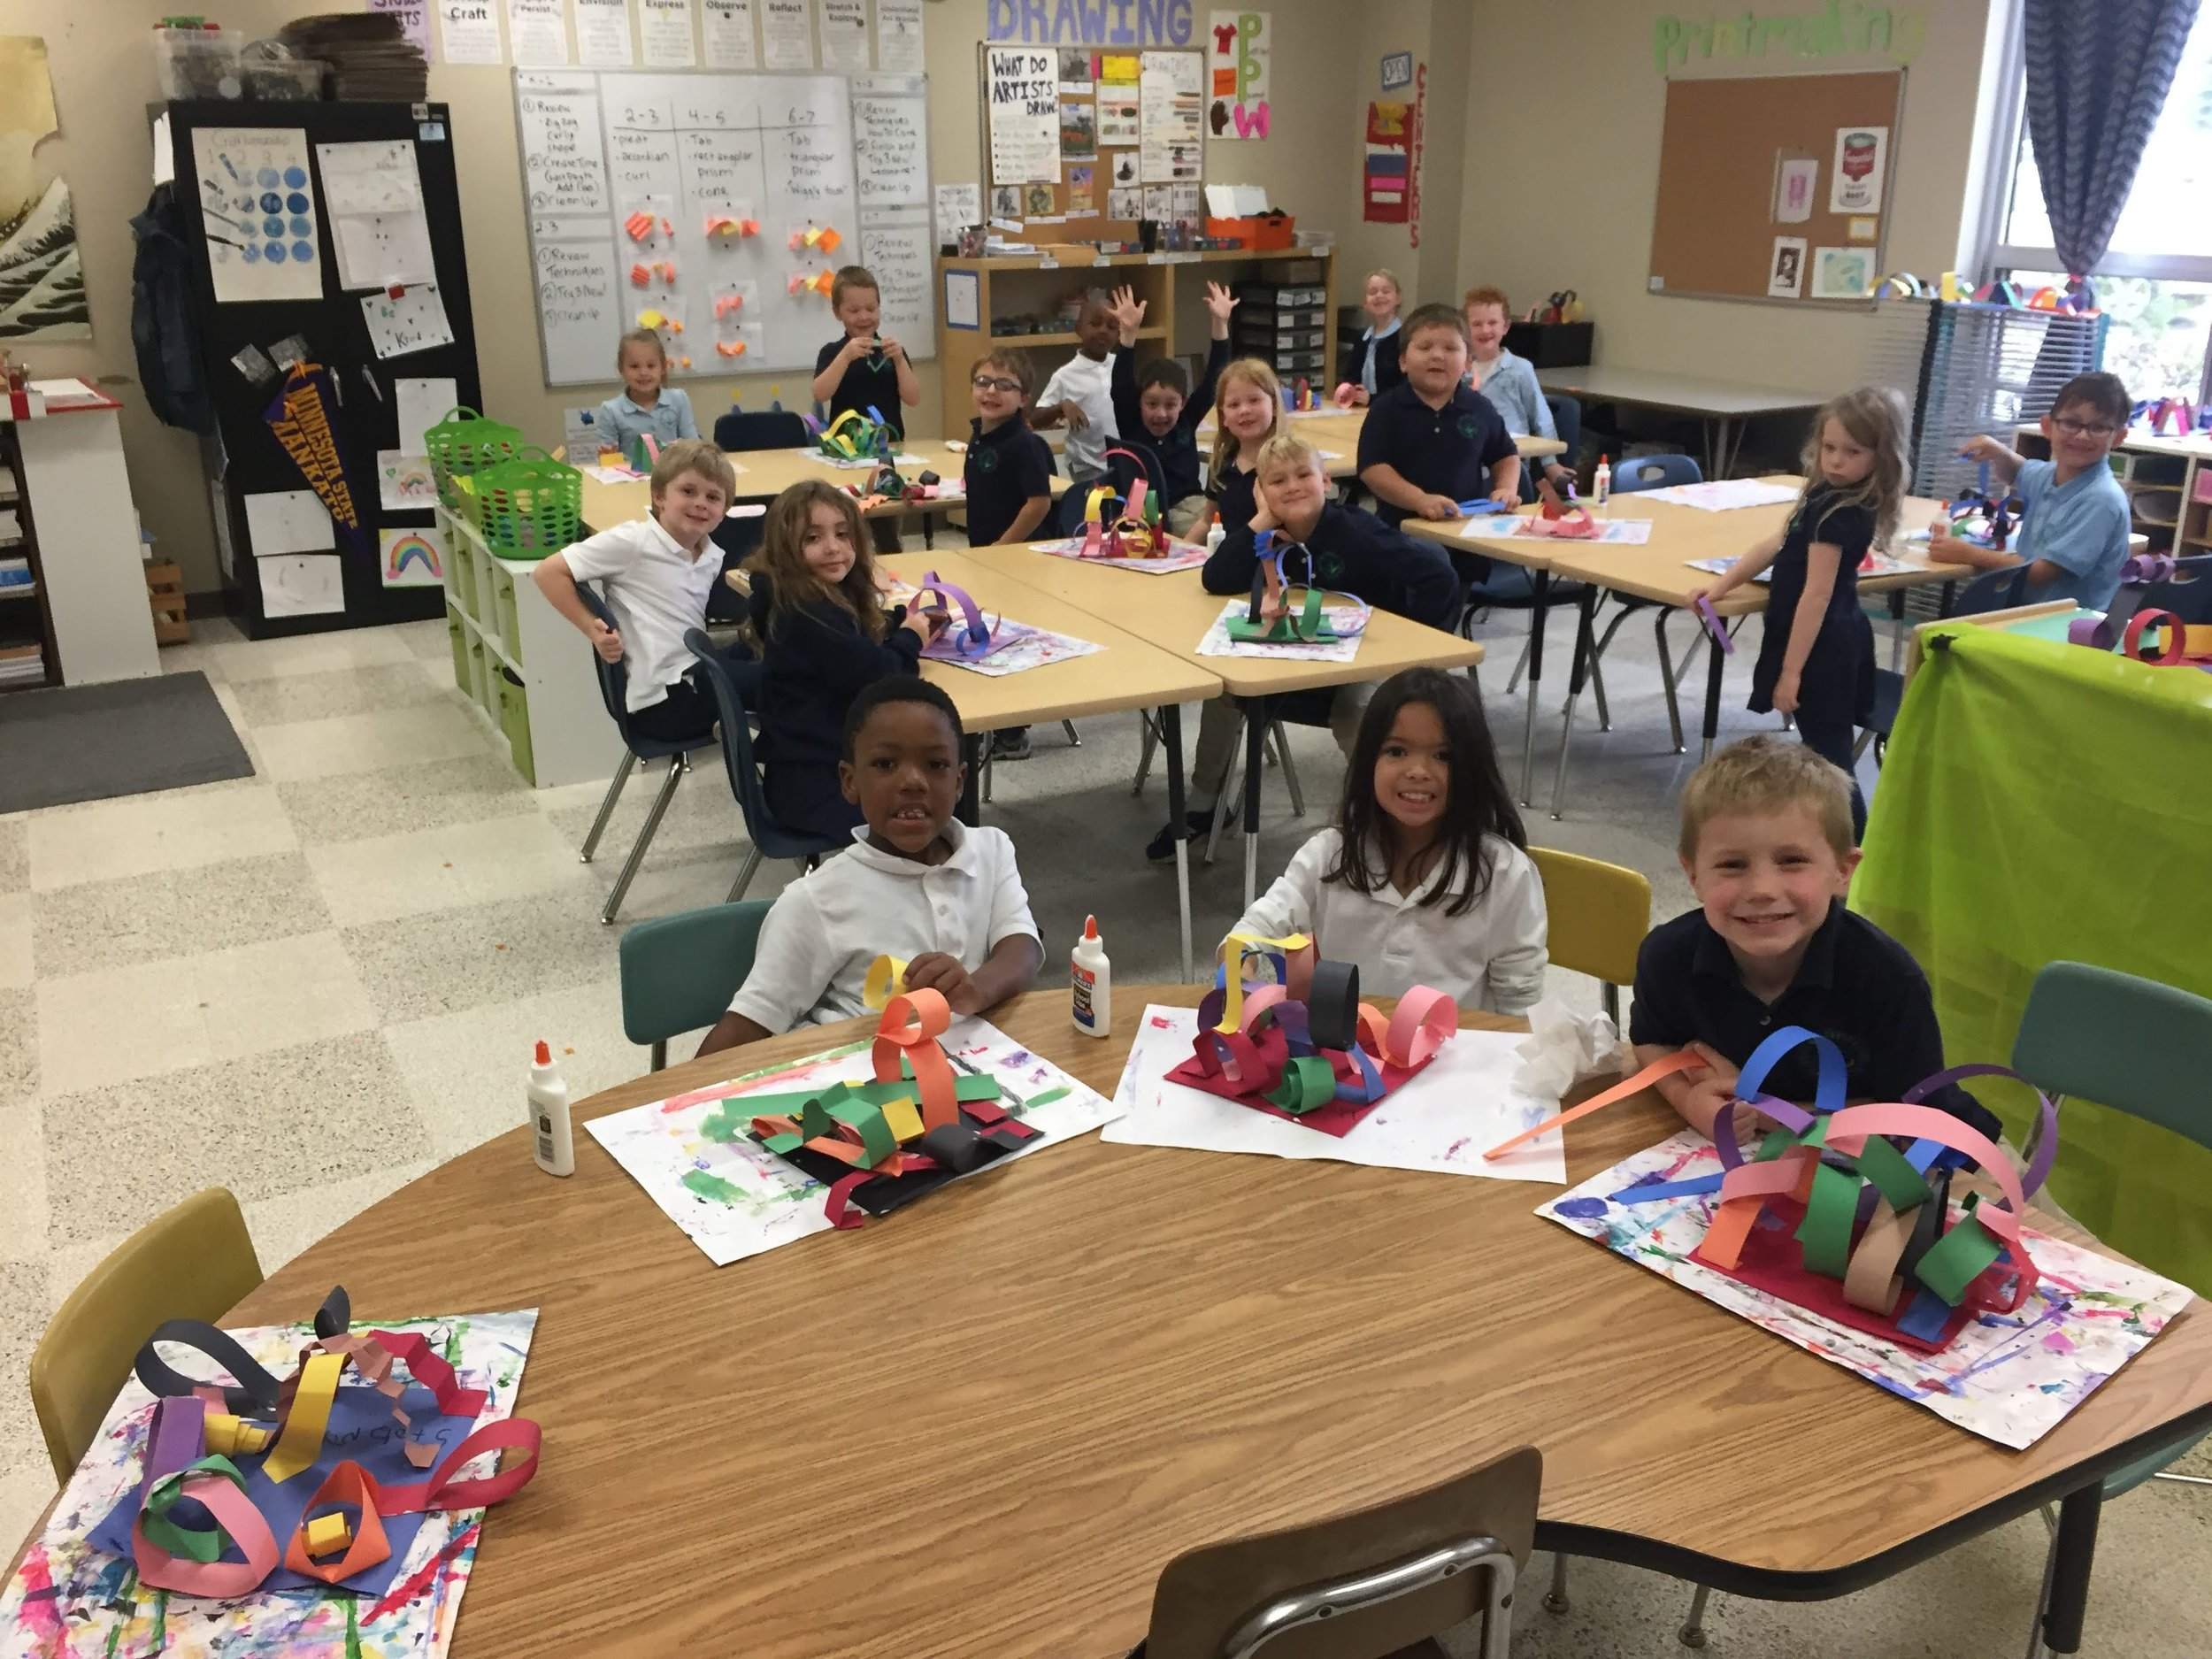 Mrs. Johnson's first grade class takes a moment to smile and show off their sculptures for the camera.